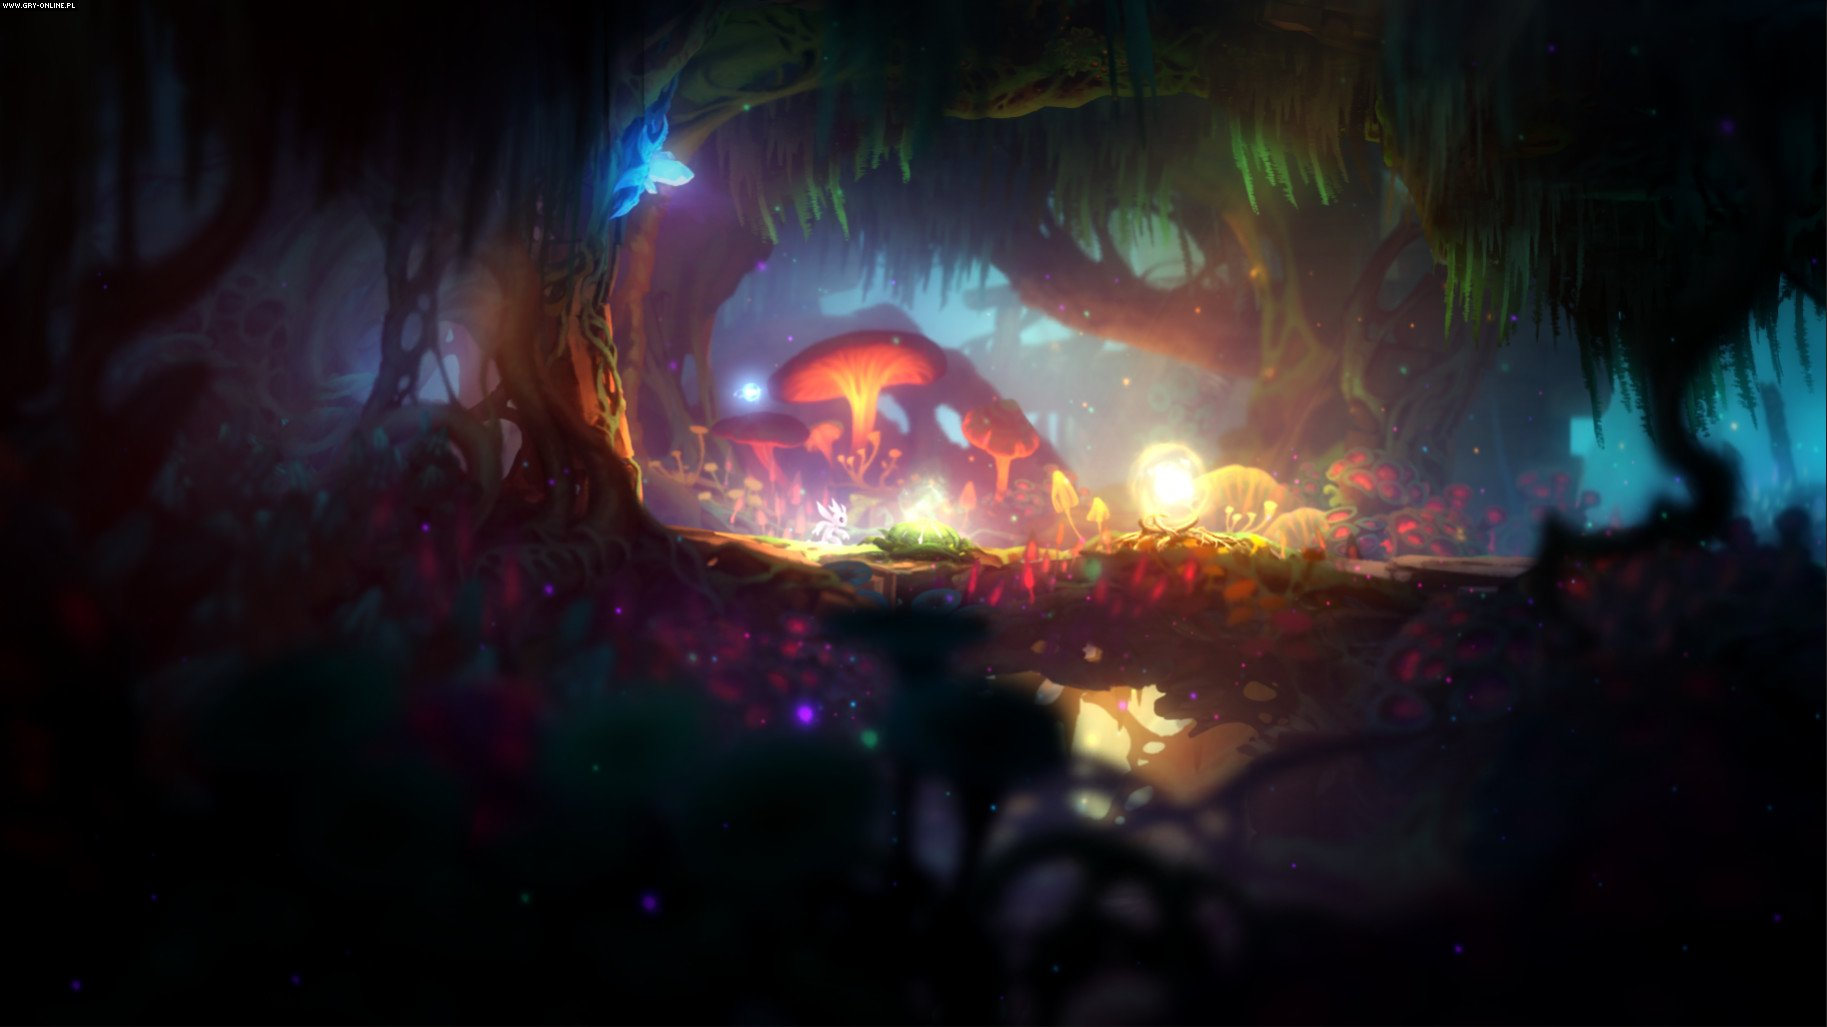 Ori and the Blind Forest: Definitive Edition PC, XONE Gry Screen 2/20, Moon Studios, Xbox Game Studios / Microsoft Studios